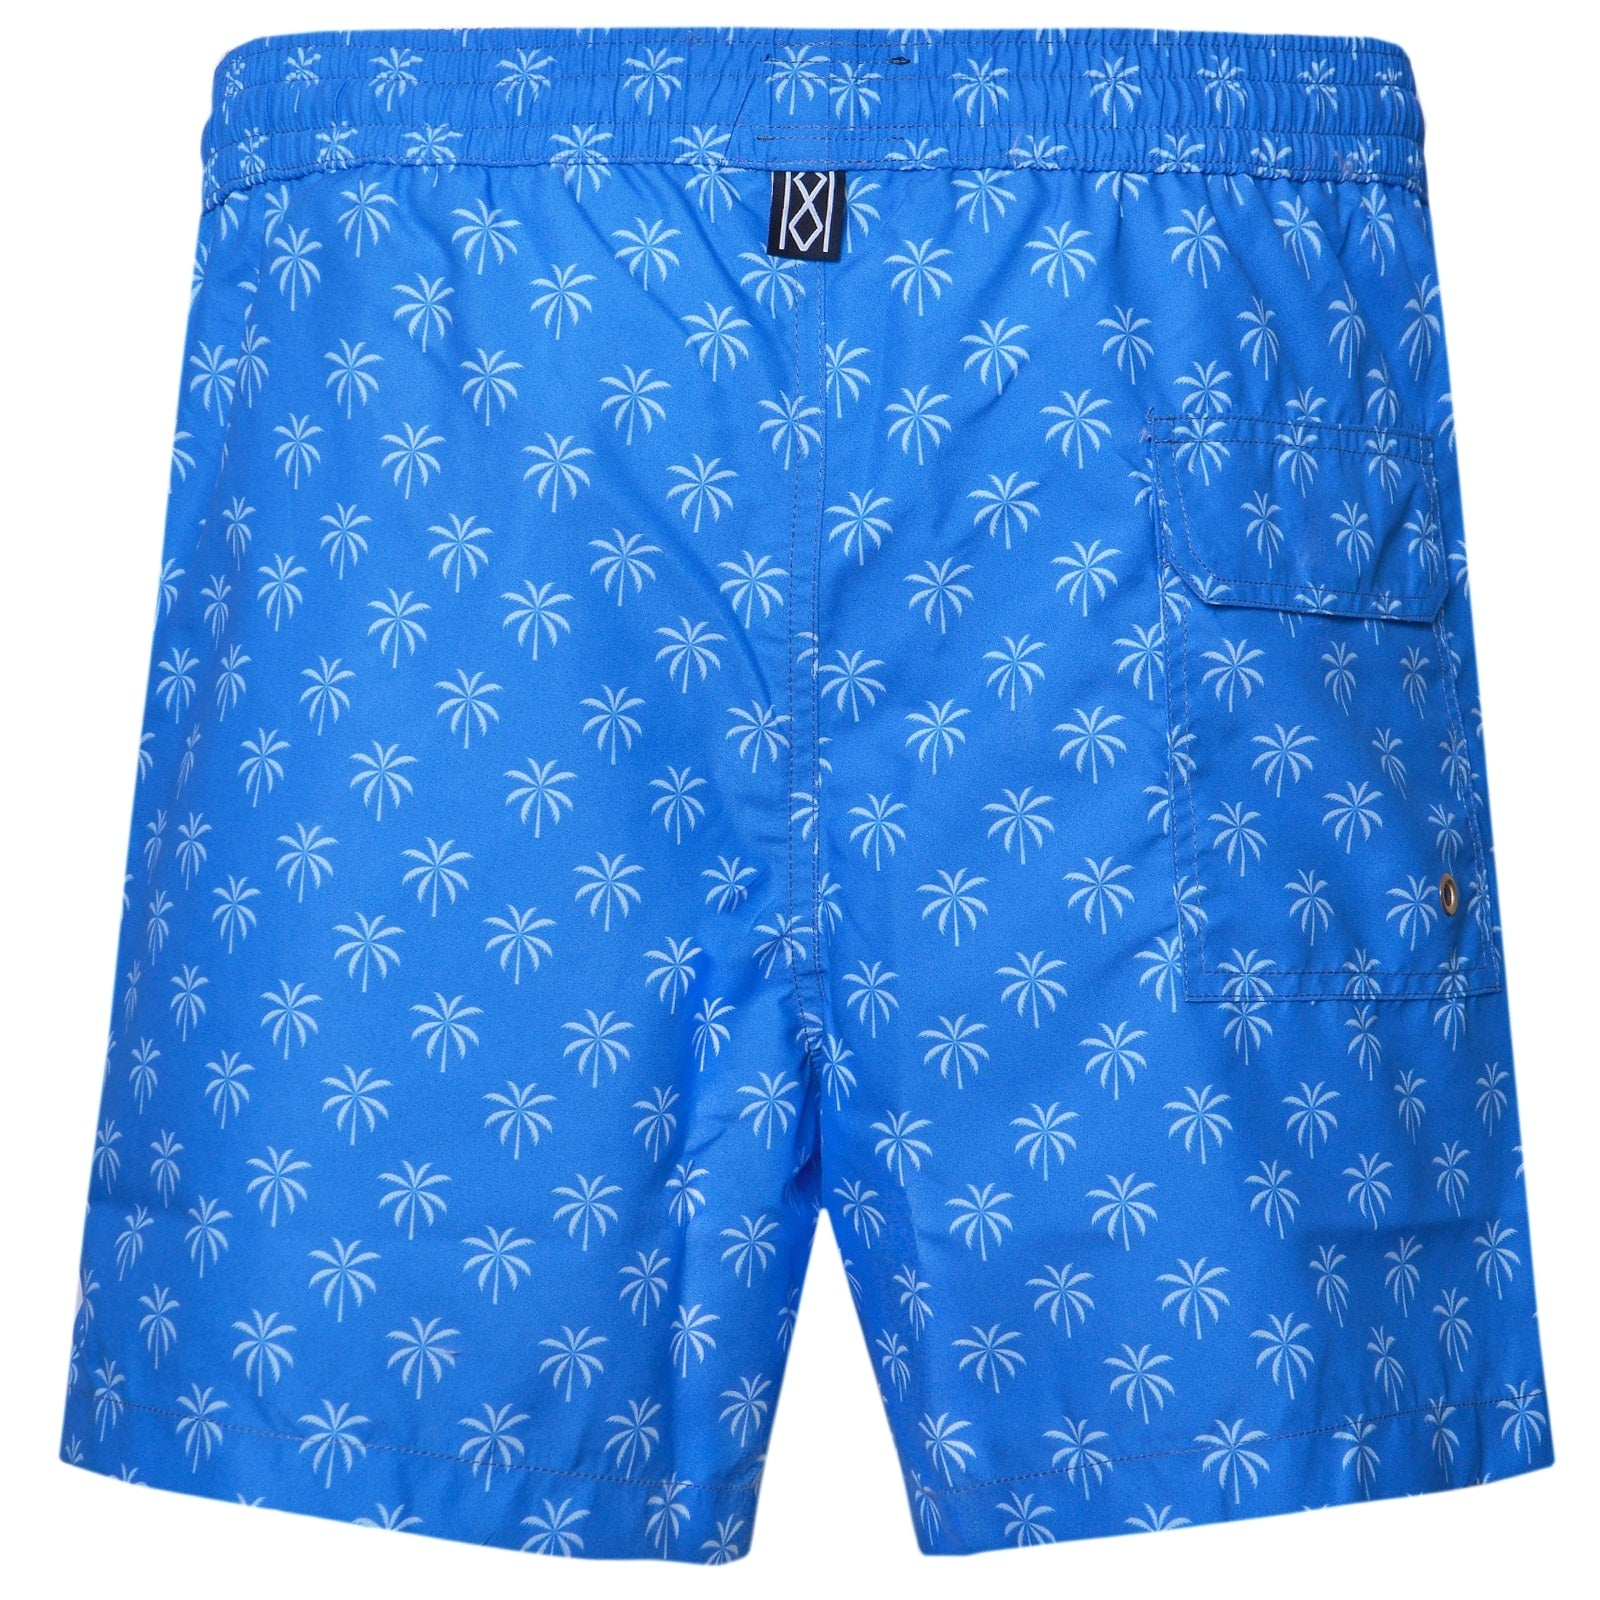 Palms Swim Shorts - kloters